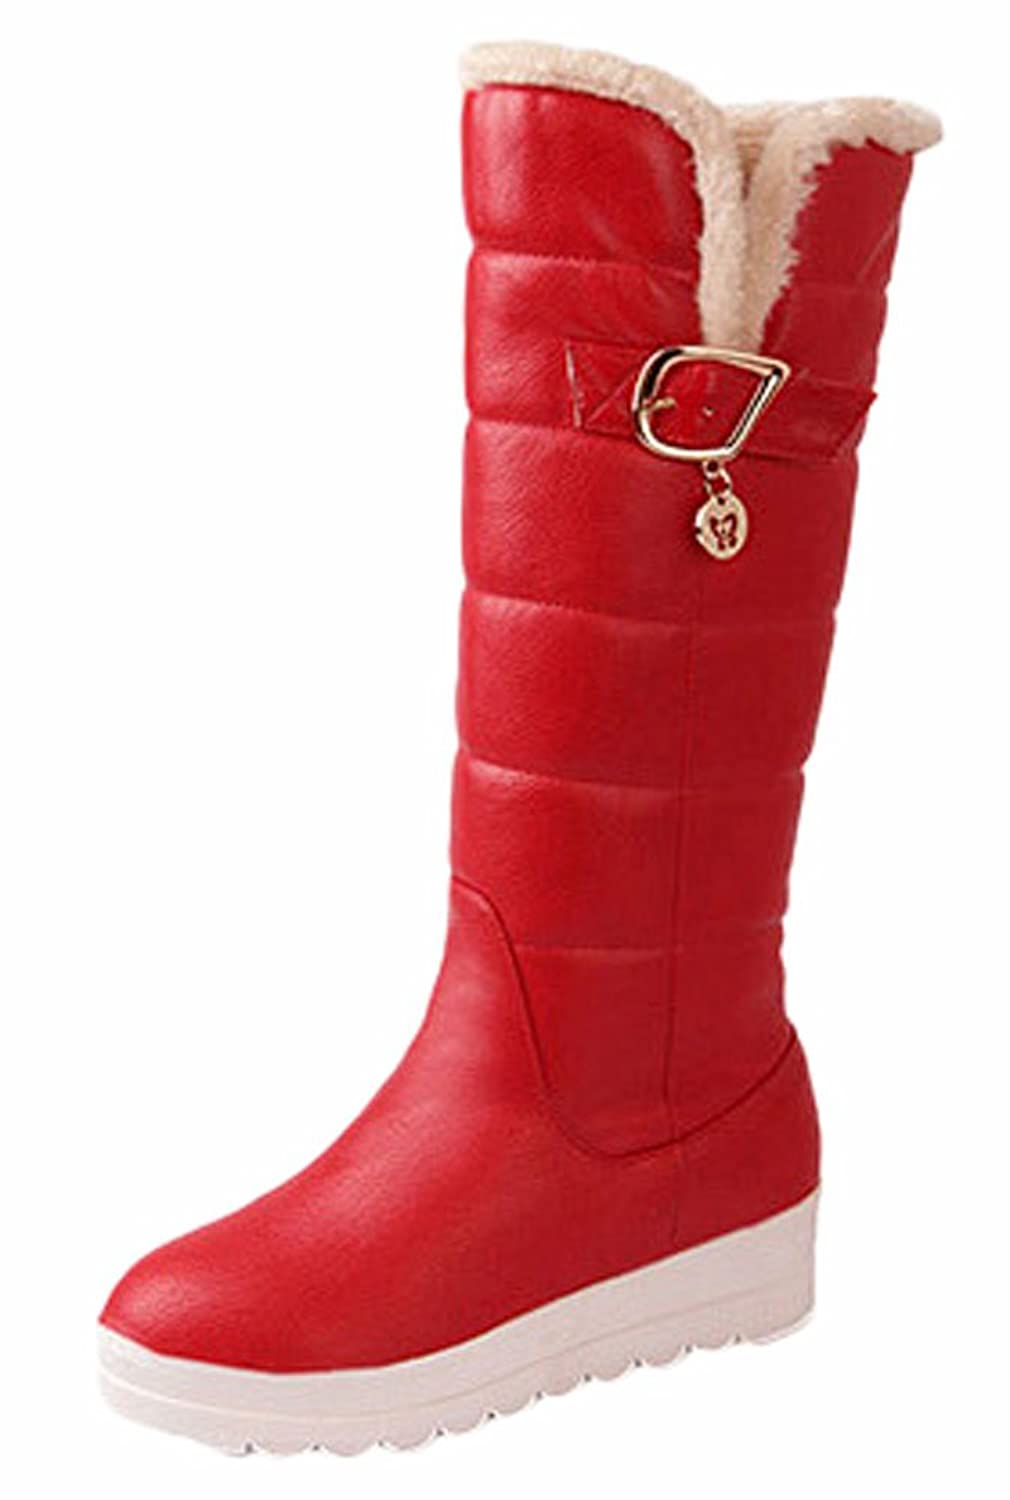 Ace Women's Winter Platform Knee-high Thermal Knight Boots with Fur Plus Size